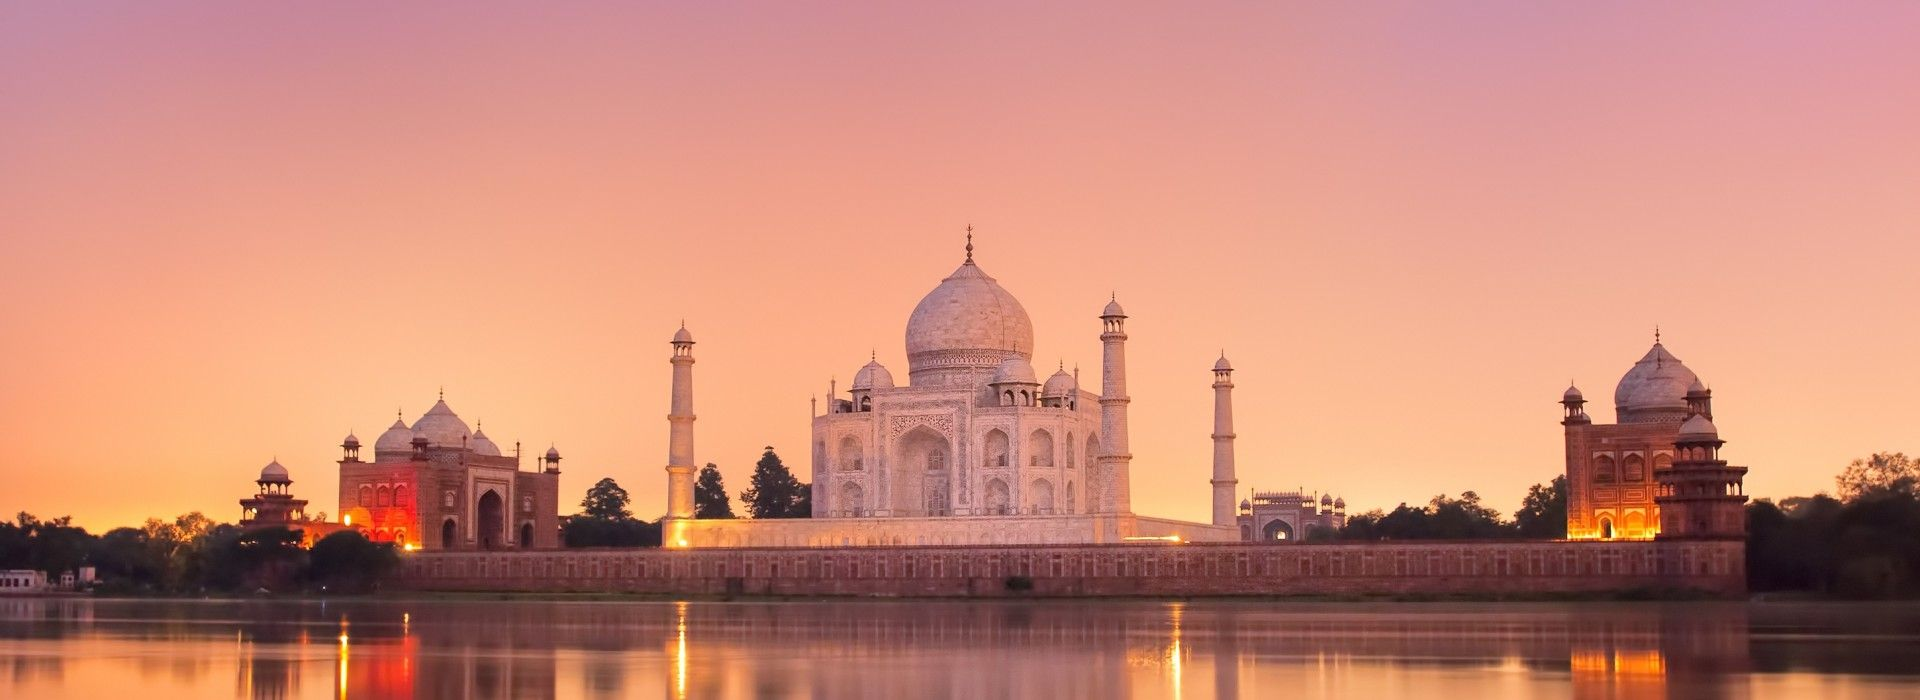 Deserts and canyons Tours in Delhi & Golden Triangle